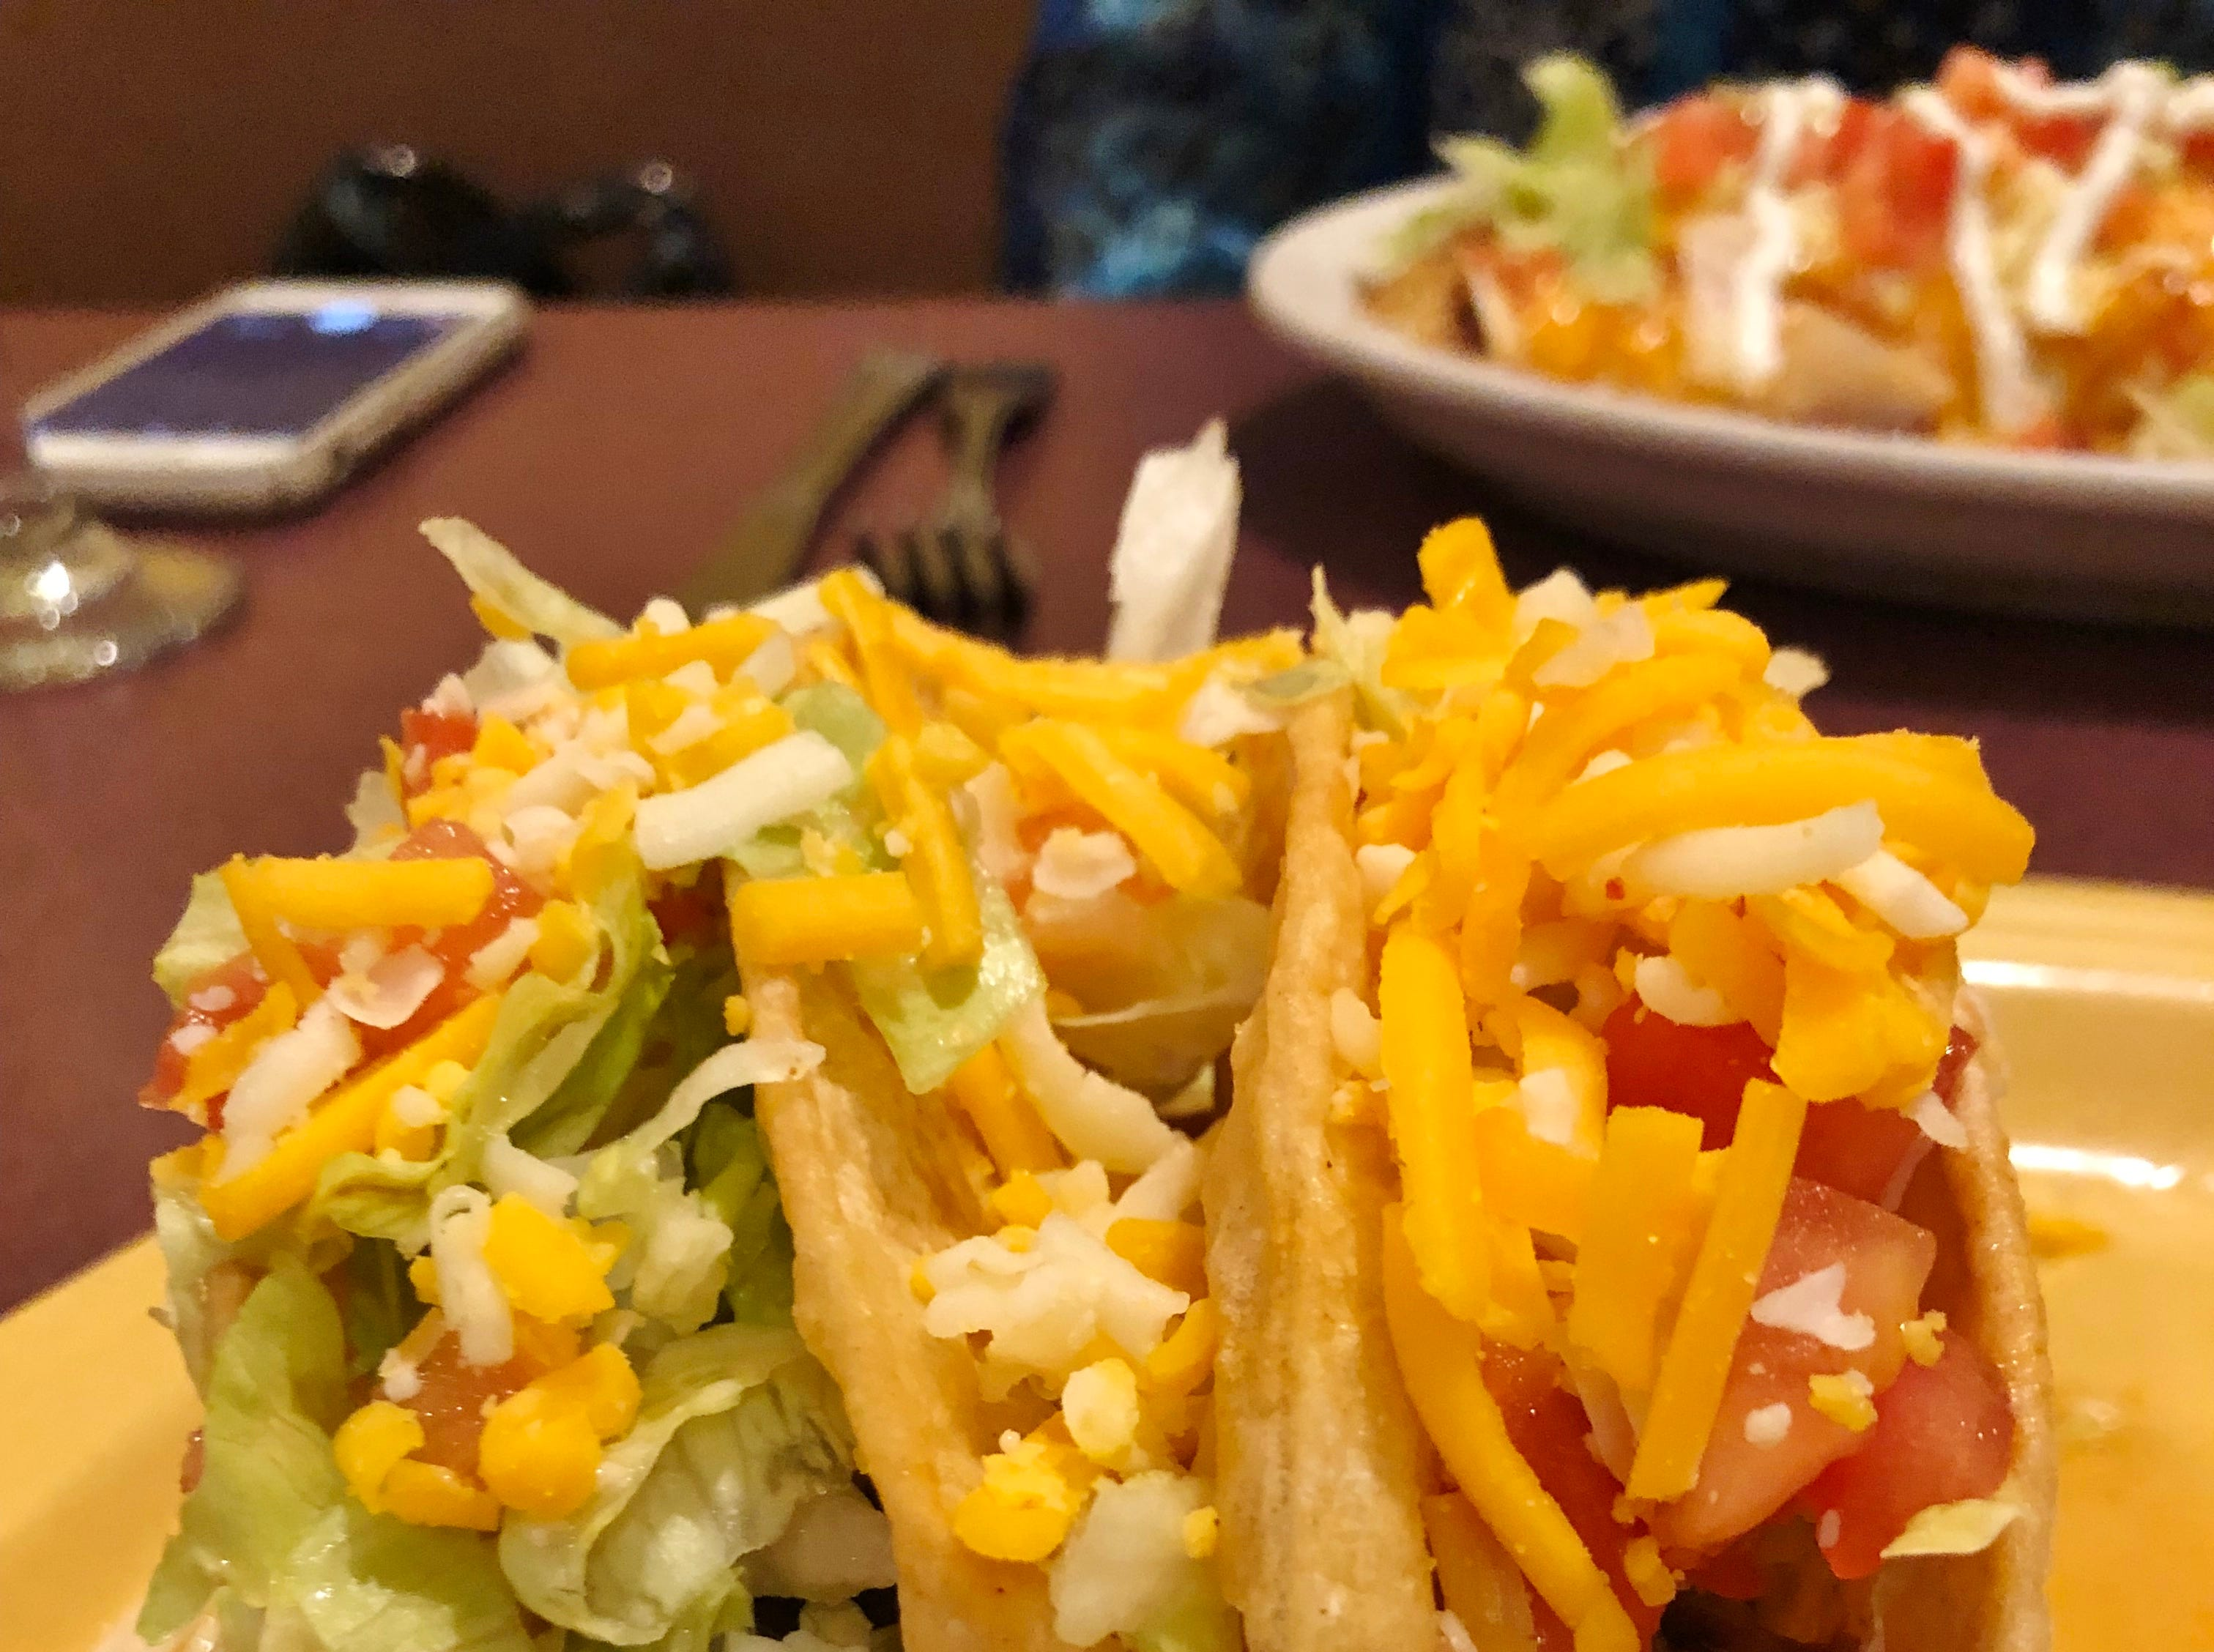 Casa Azteca's hard shell tacos with shredded beef served with lettuce, tomatoes and shredded cheese.